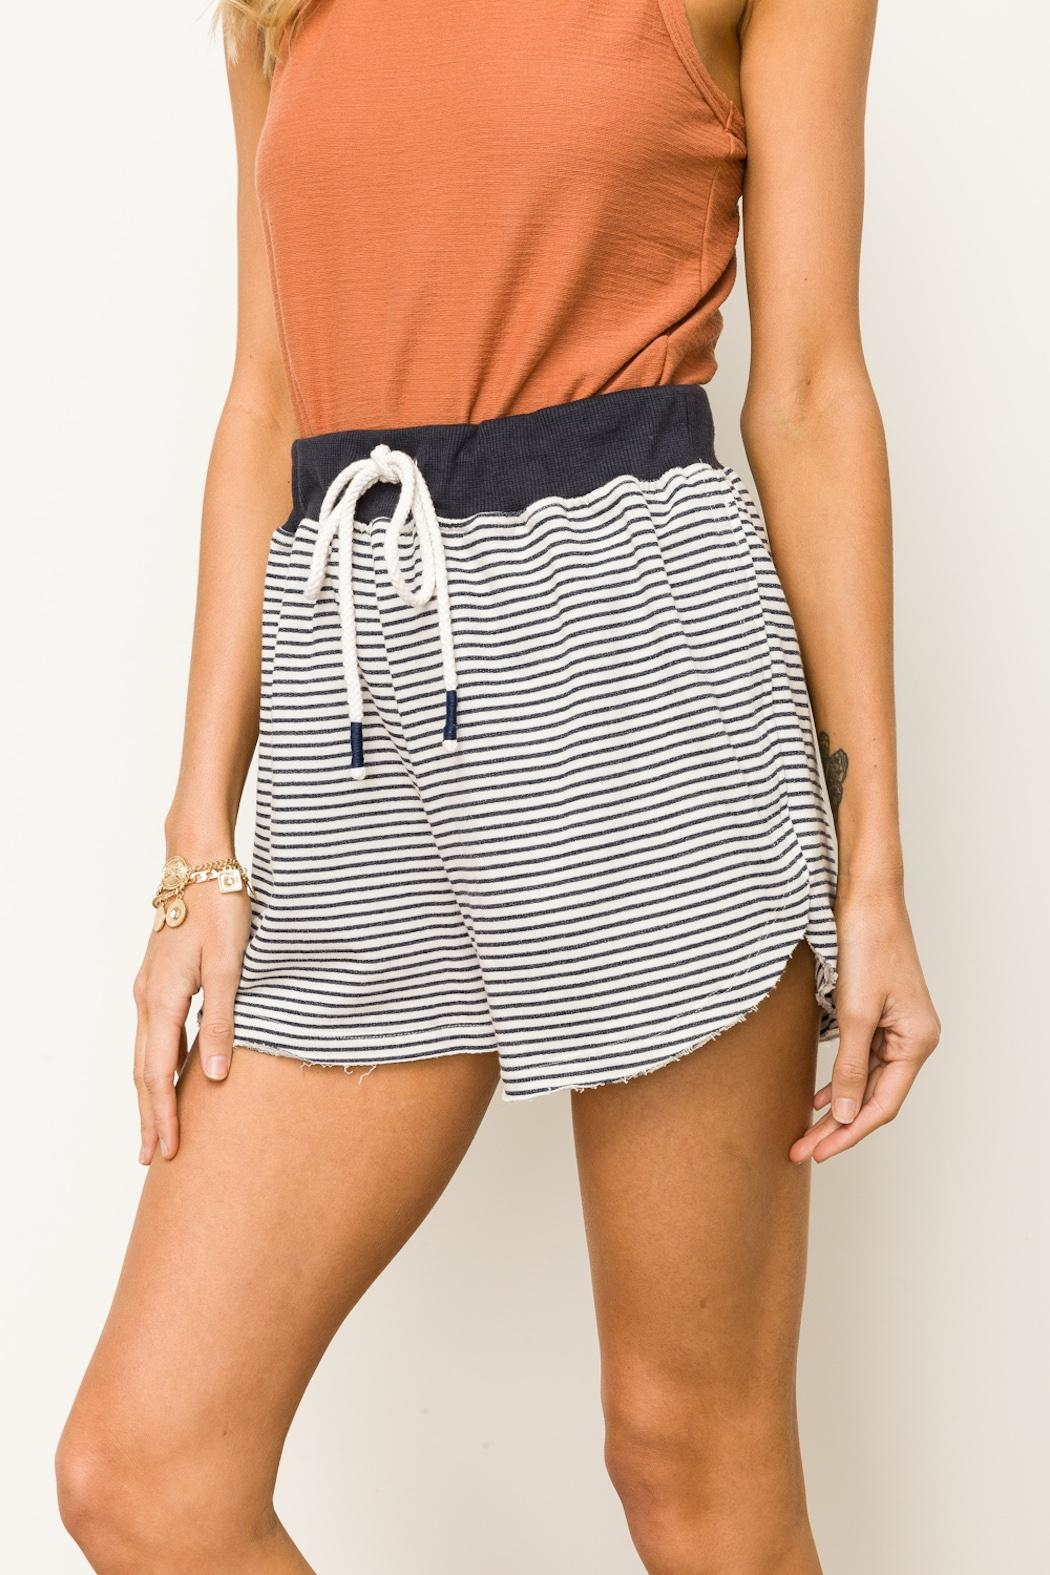 Hem & Thread Striped Terry Shorts - Front Full Image